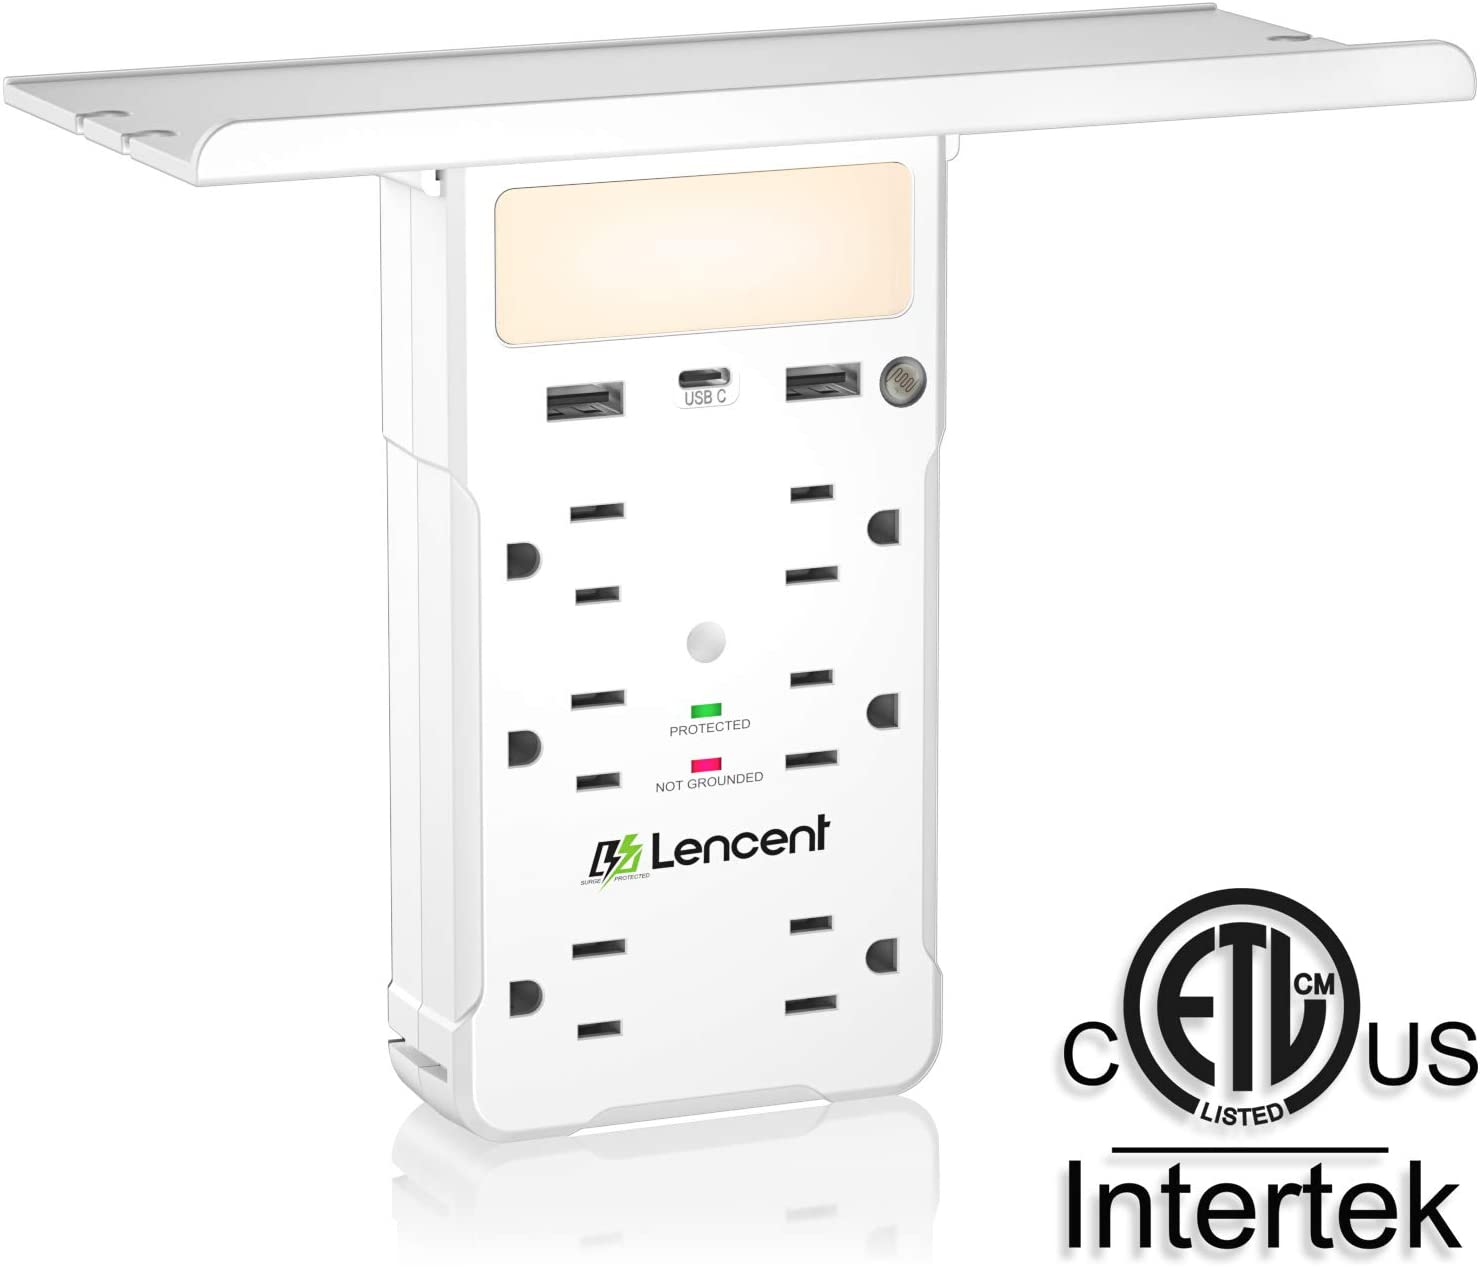 Multi Plug Outlet, LENCENT Surge Protector Plug Extender with Night Light, USB C (3.4A Total) and Shelf, USB Wall Charger Plug Adapter Power Strip Multiple Socket Splitter Expander - ETL Listed